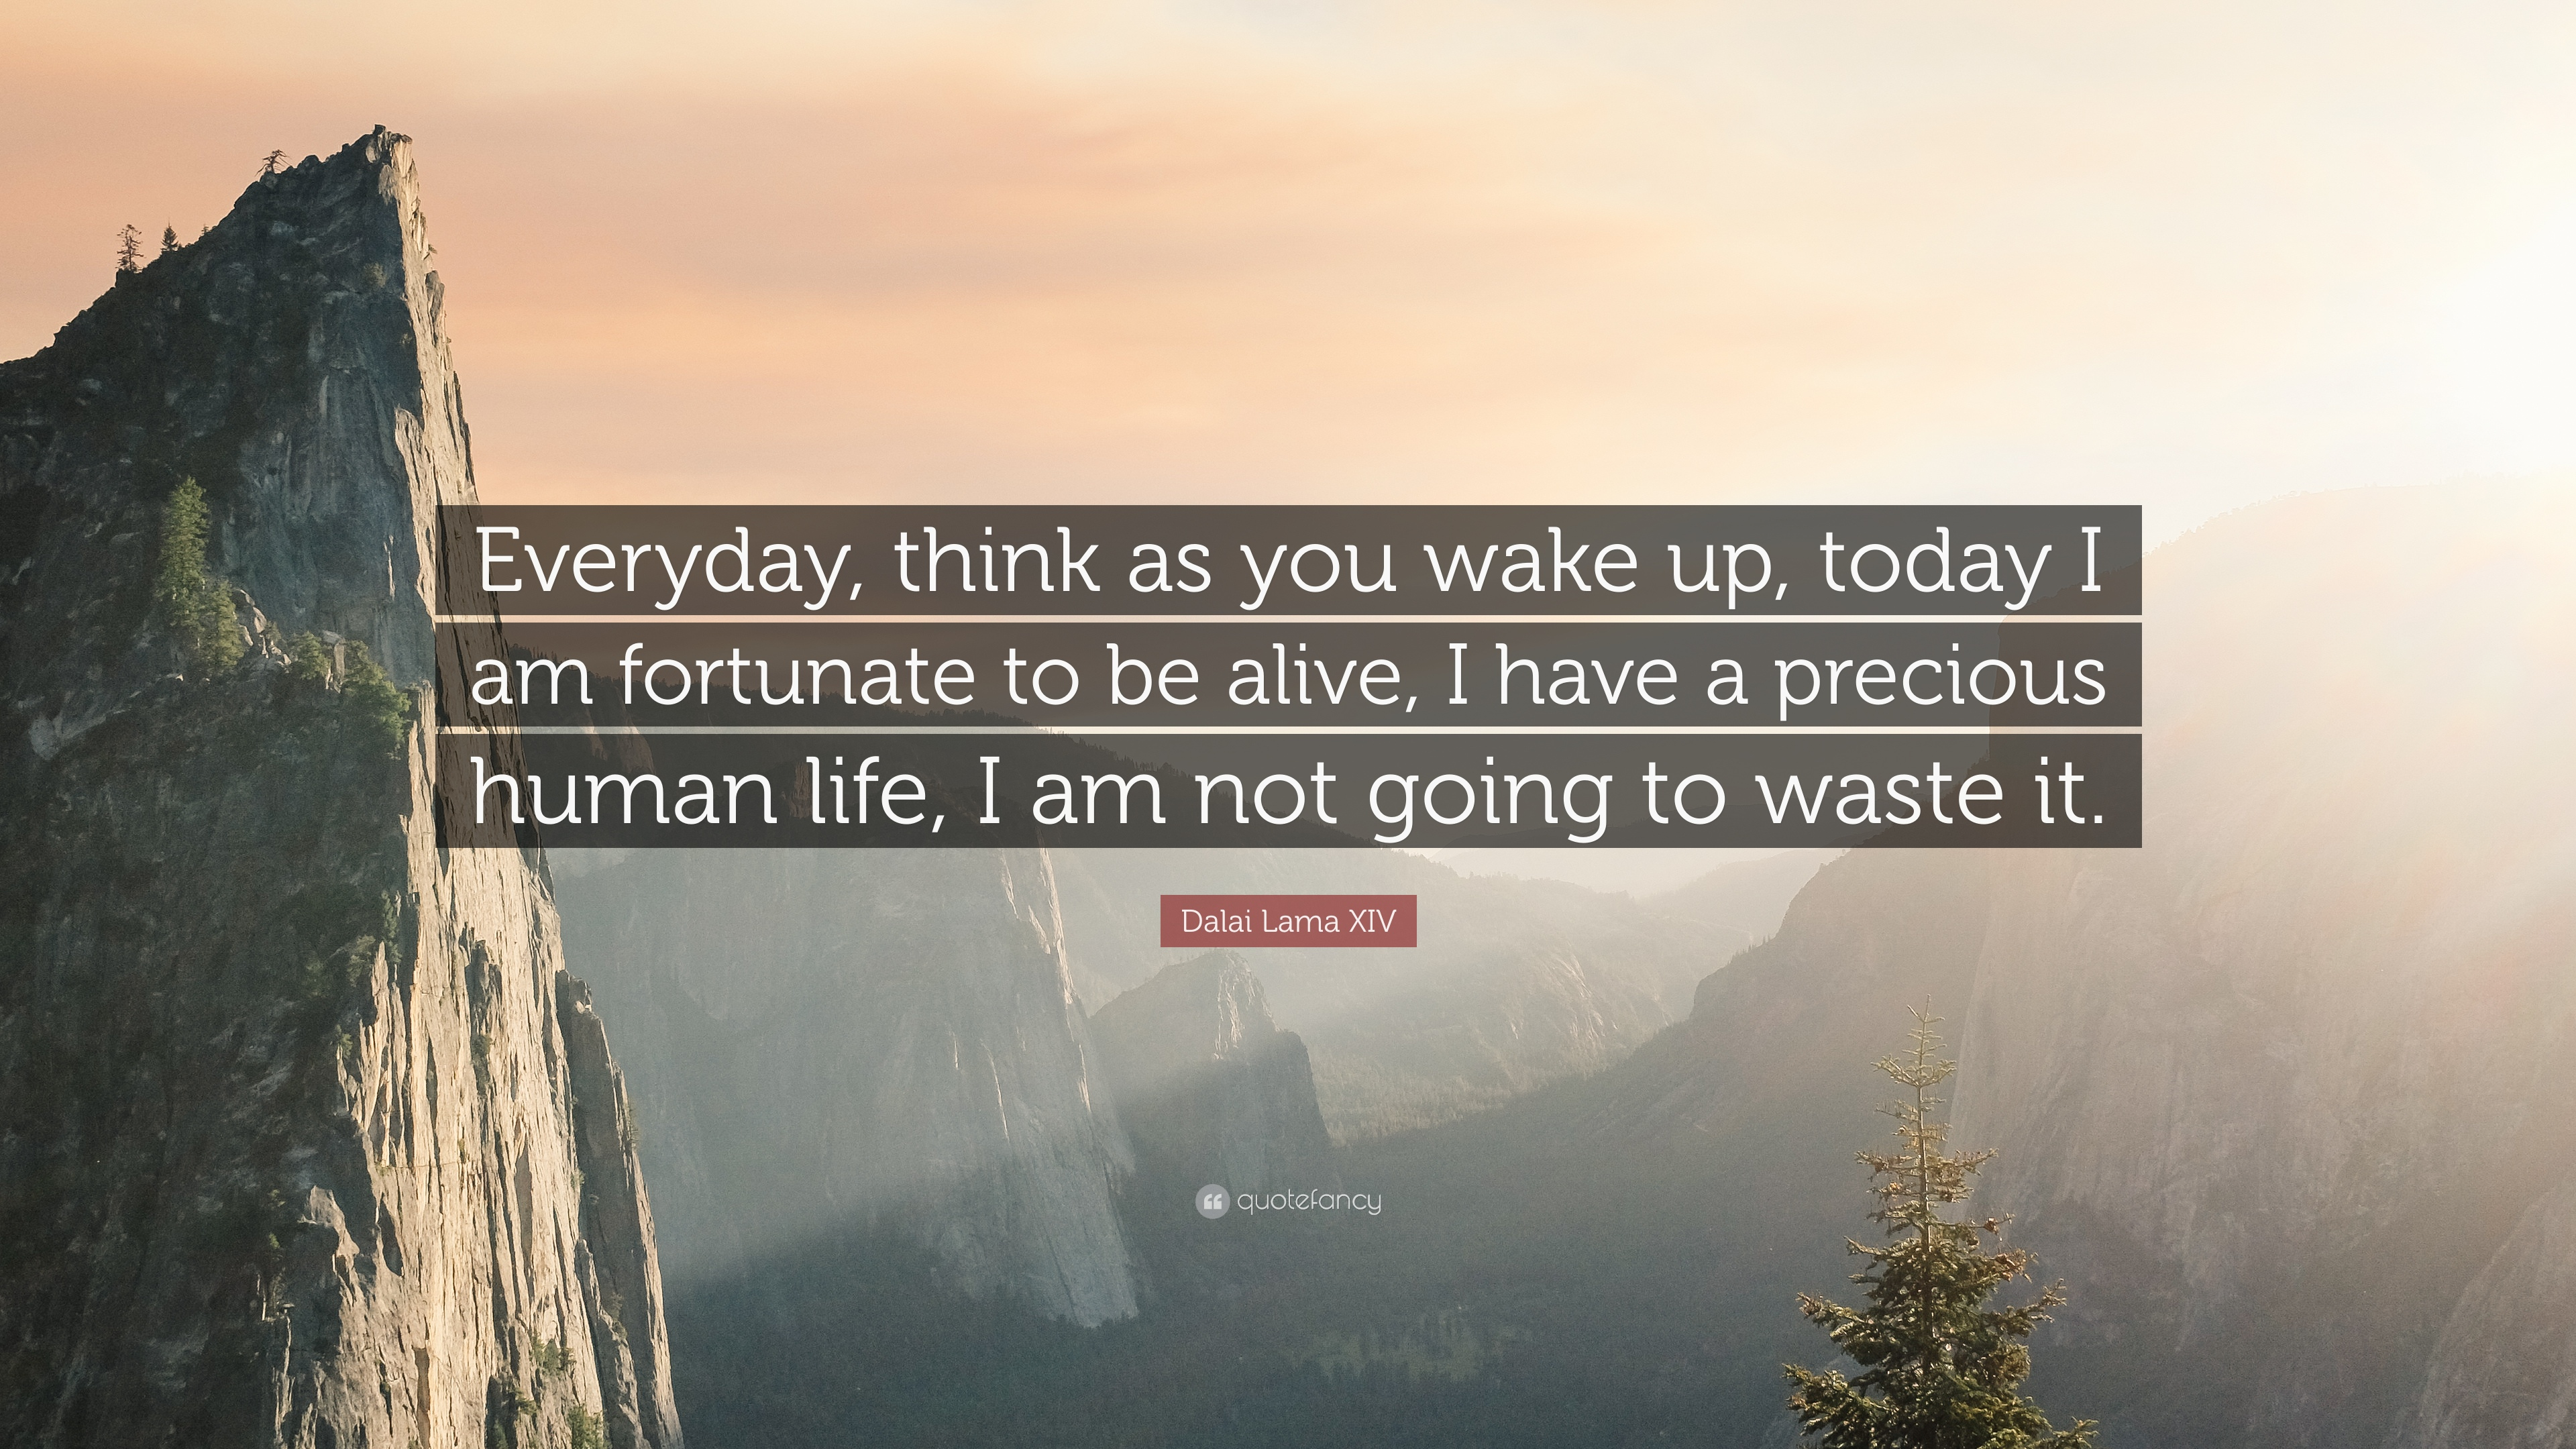 Dalai Lama Xiv Quote Everyday Think As You Wake Up Today I Am